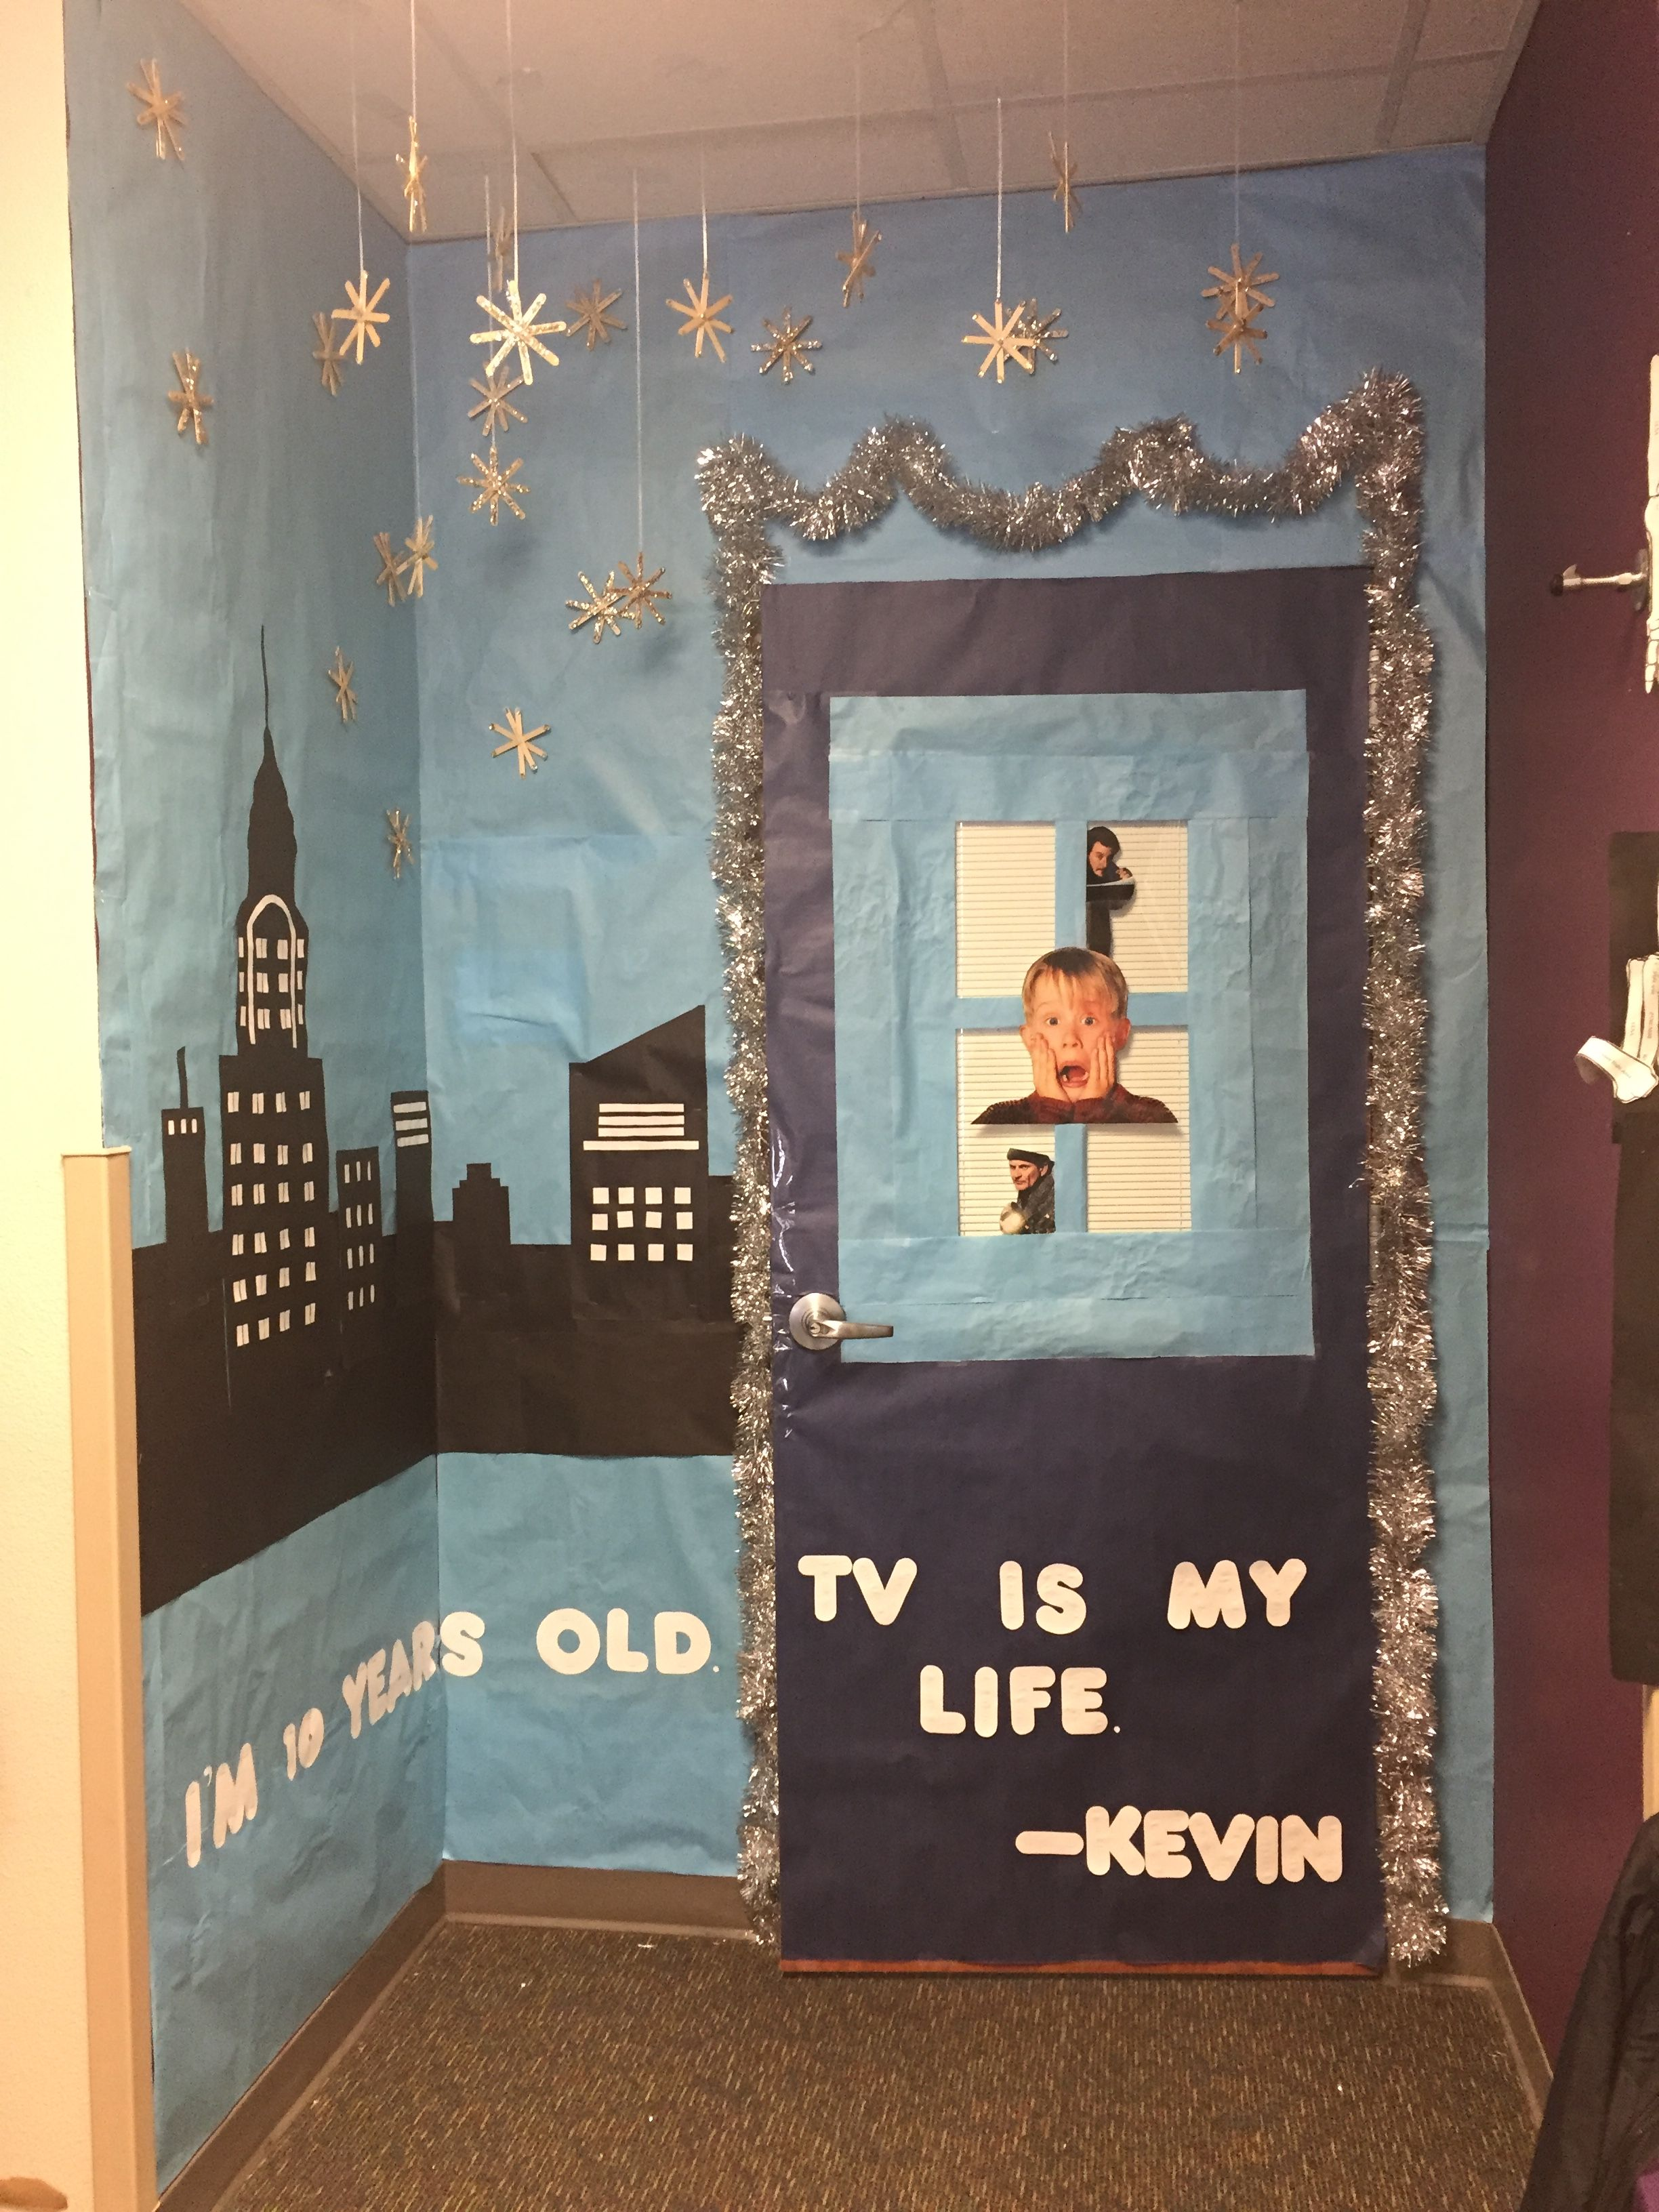 Aden S 3rd Grade Door Decoration I Made Christmas Movie Theme And The Class Ch Home Alone Christmas Christmas Classroom Door Christmas Door Decorating Contest